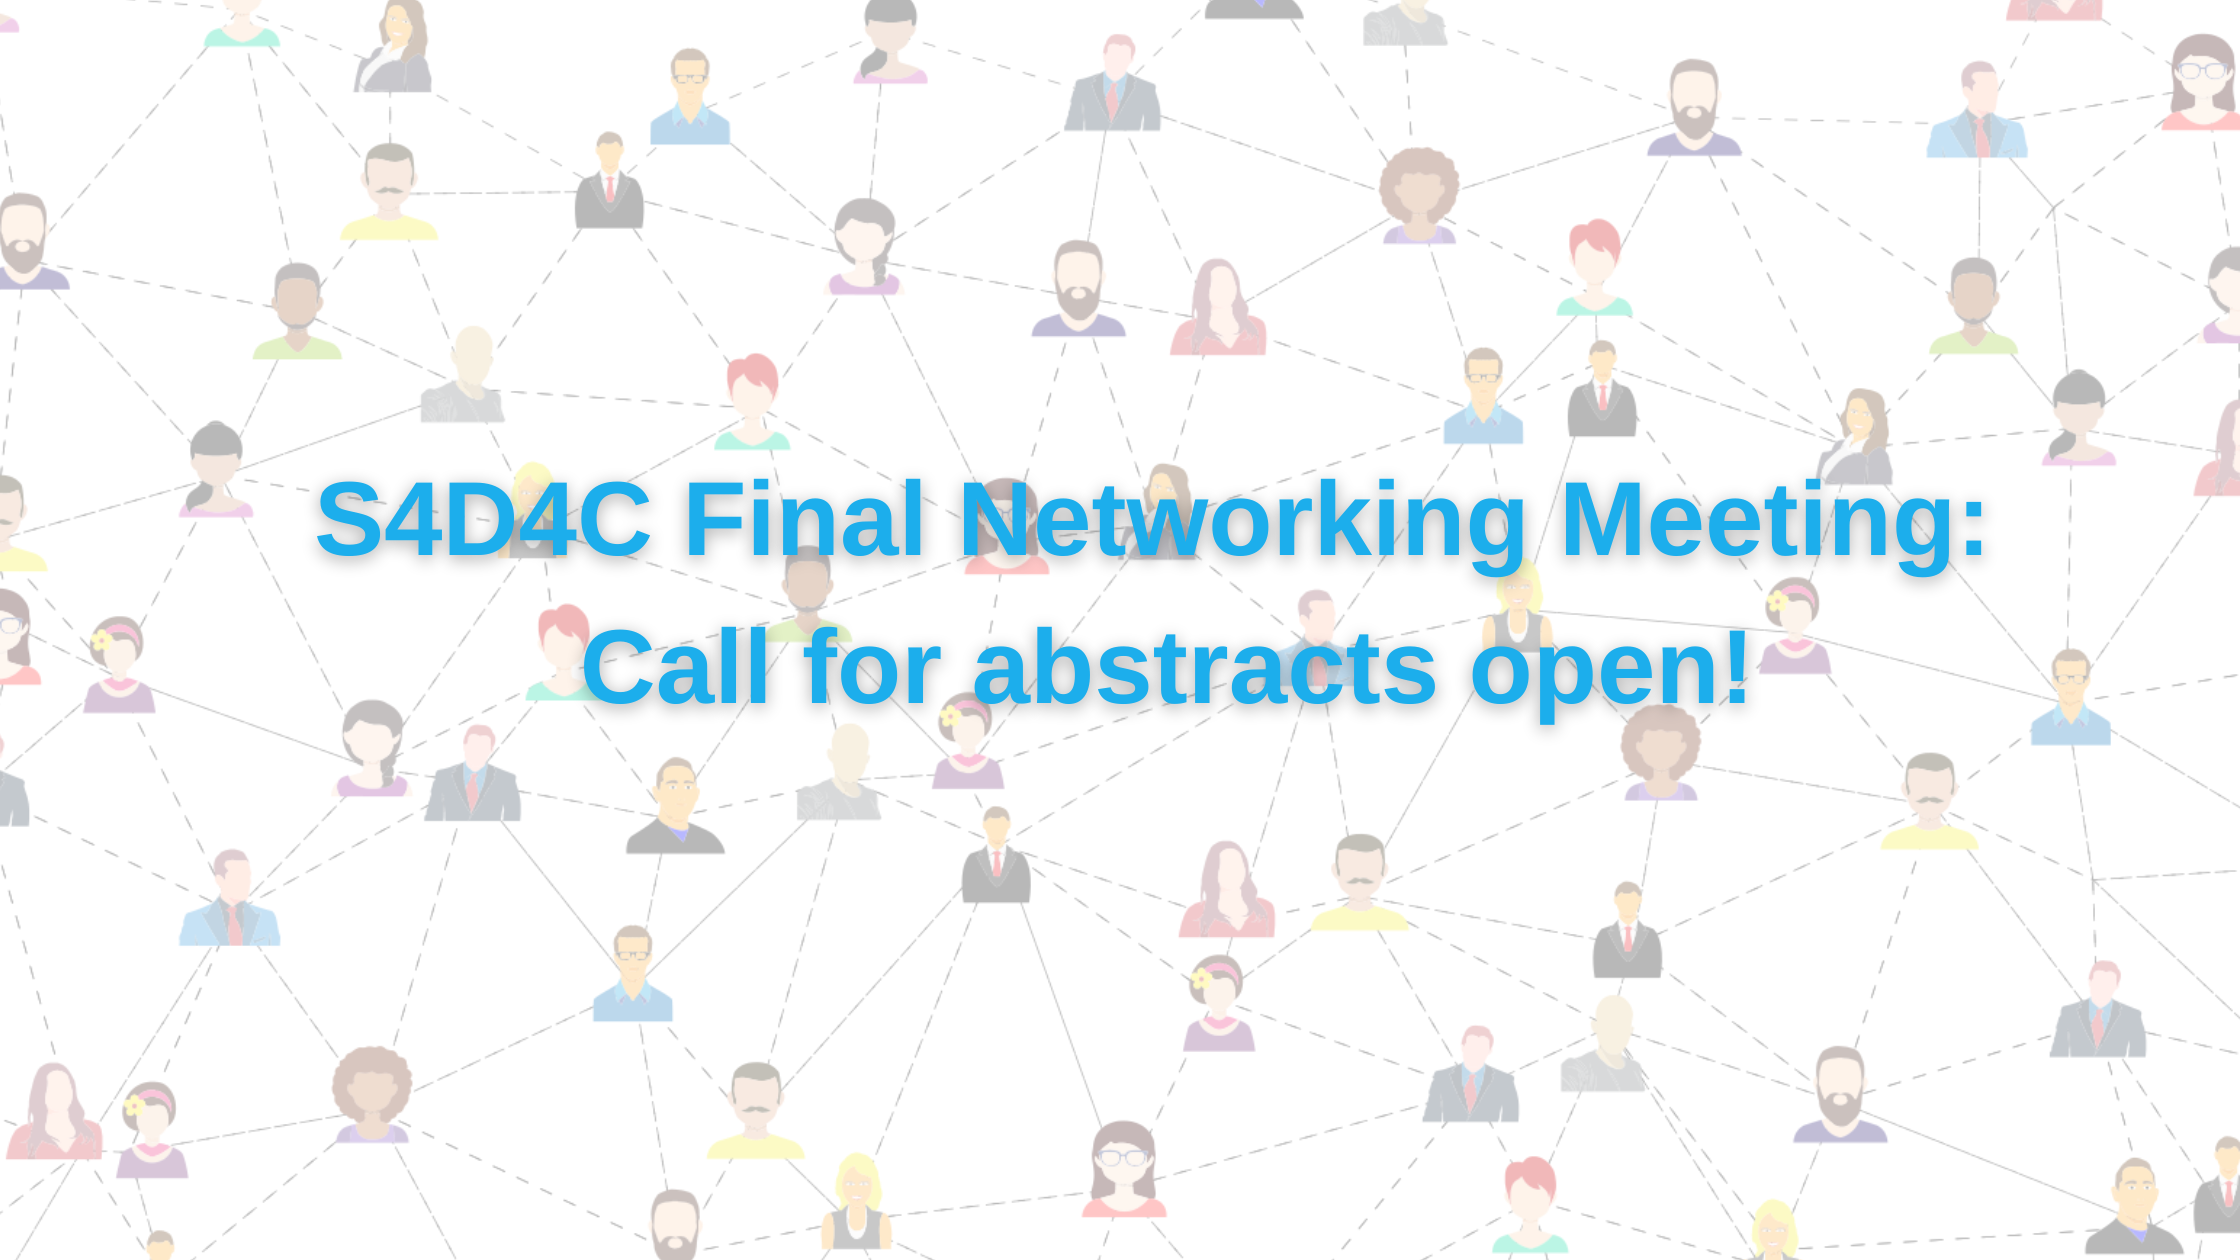 S4D4C\'s Final Networking Meeting- Call for abstracts!